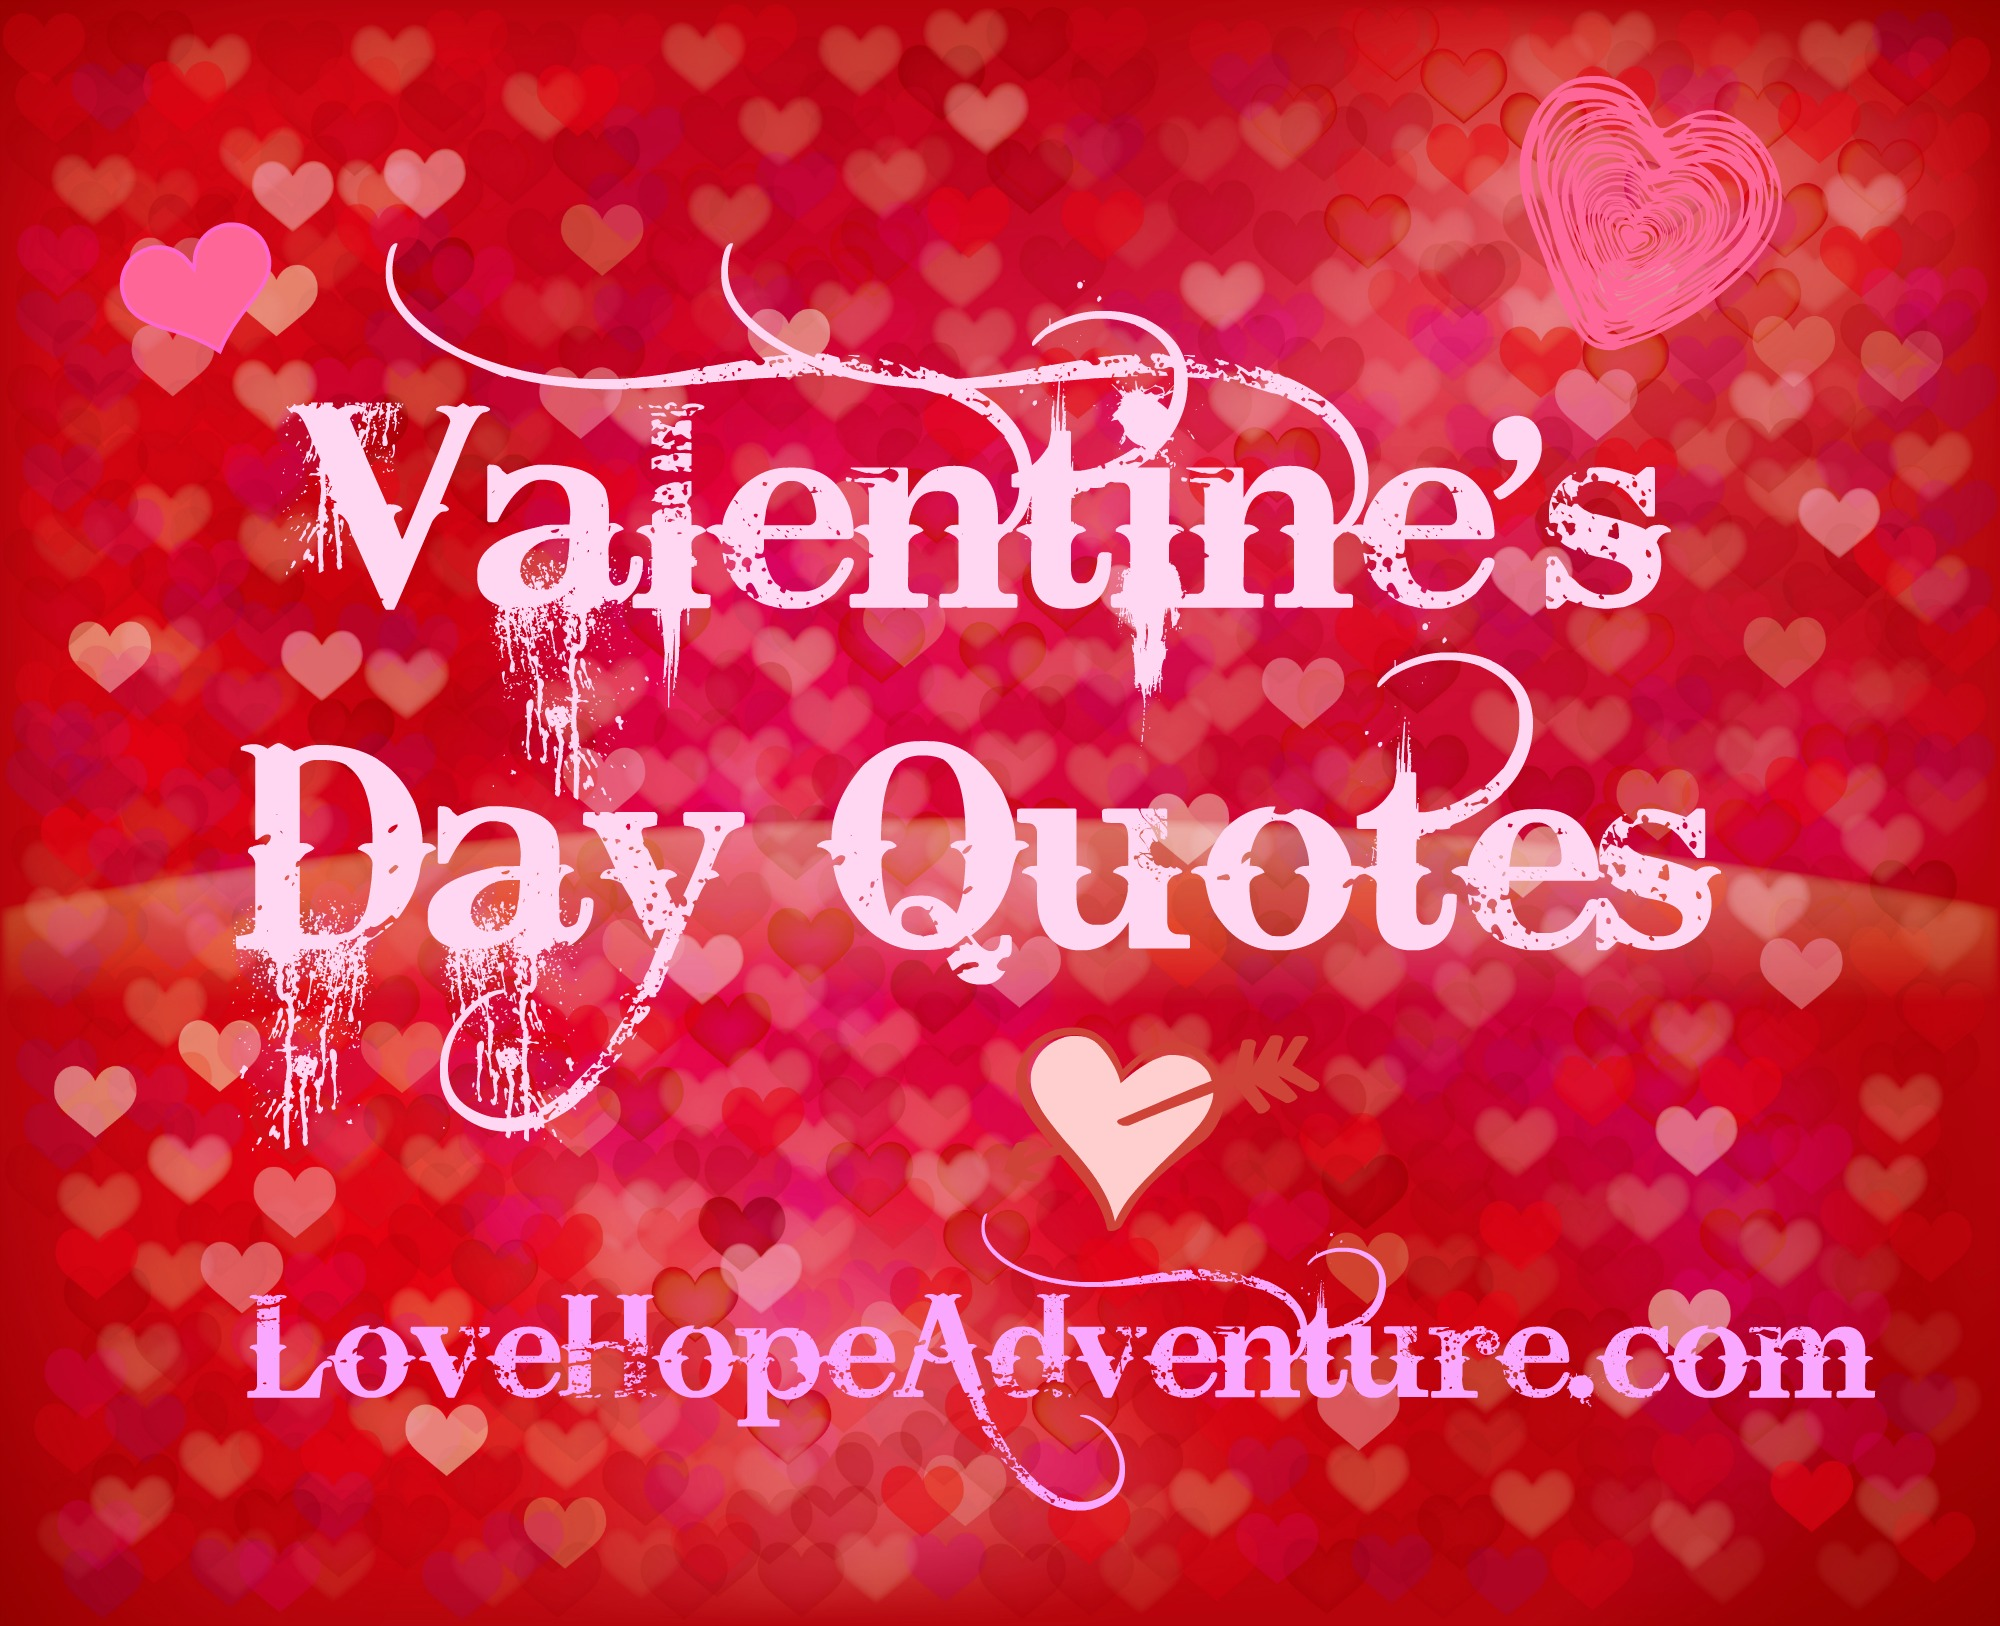 Love Quotes For Valentines Day Valentine's Day Quotes  Love Hope Adventure Marriage Advice For